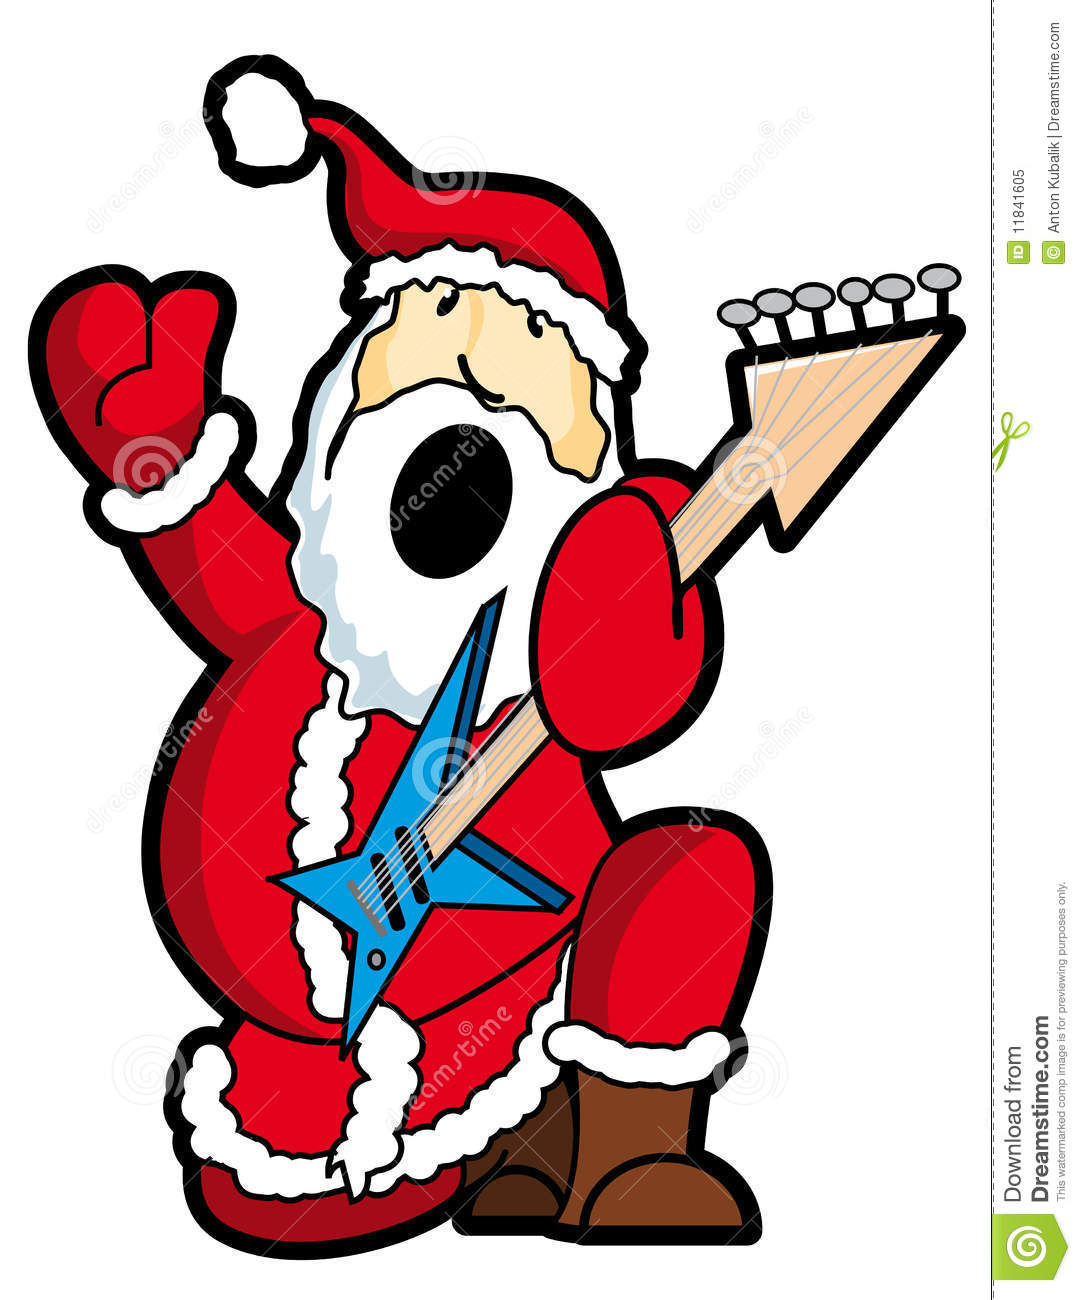 santa play guitar royalty free stock photo image 11841605 rock n roll clipart rock & roll clipart free